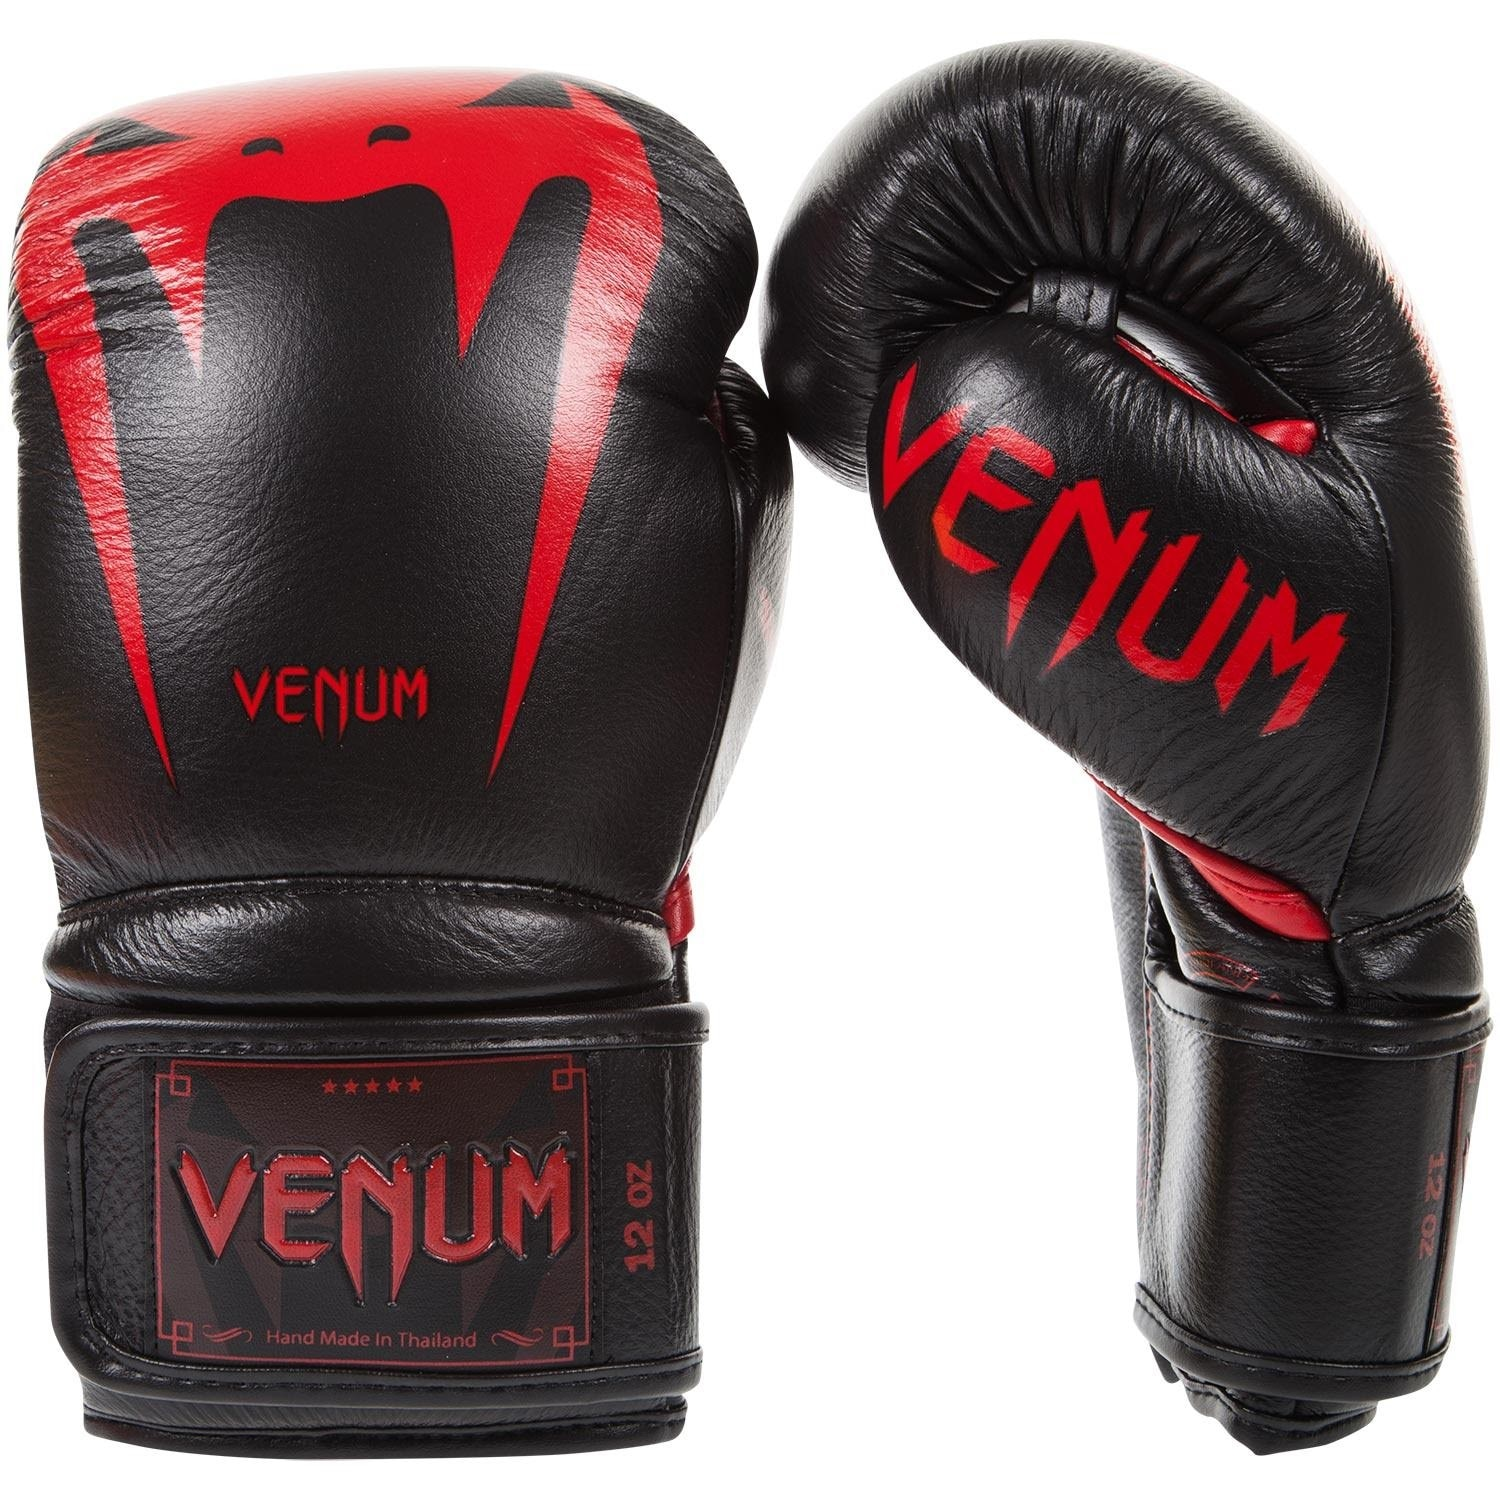 VENUM GLADIATOR 3.0 MMA FIGHT GLOVES BLACK//RED Training Sparring